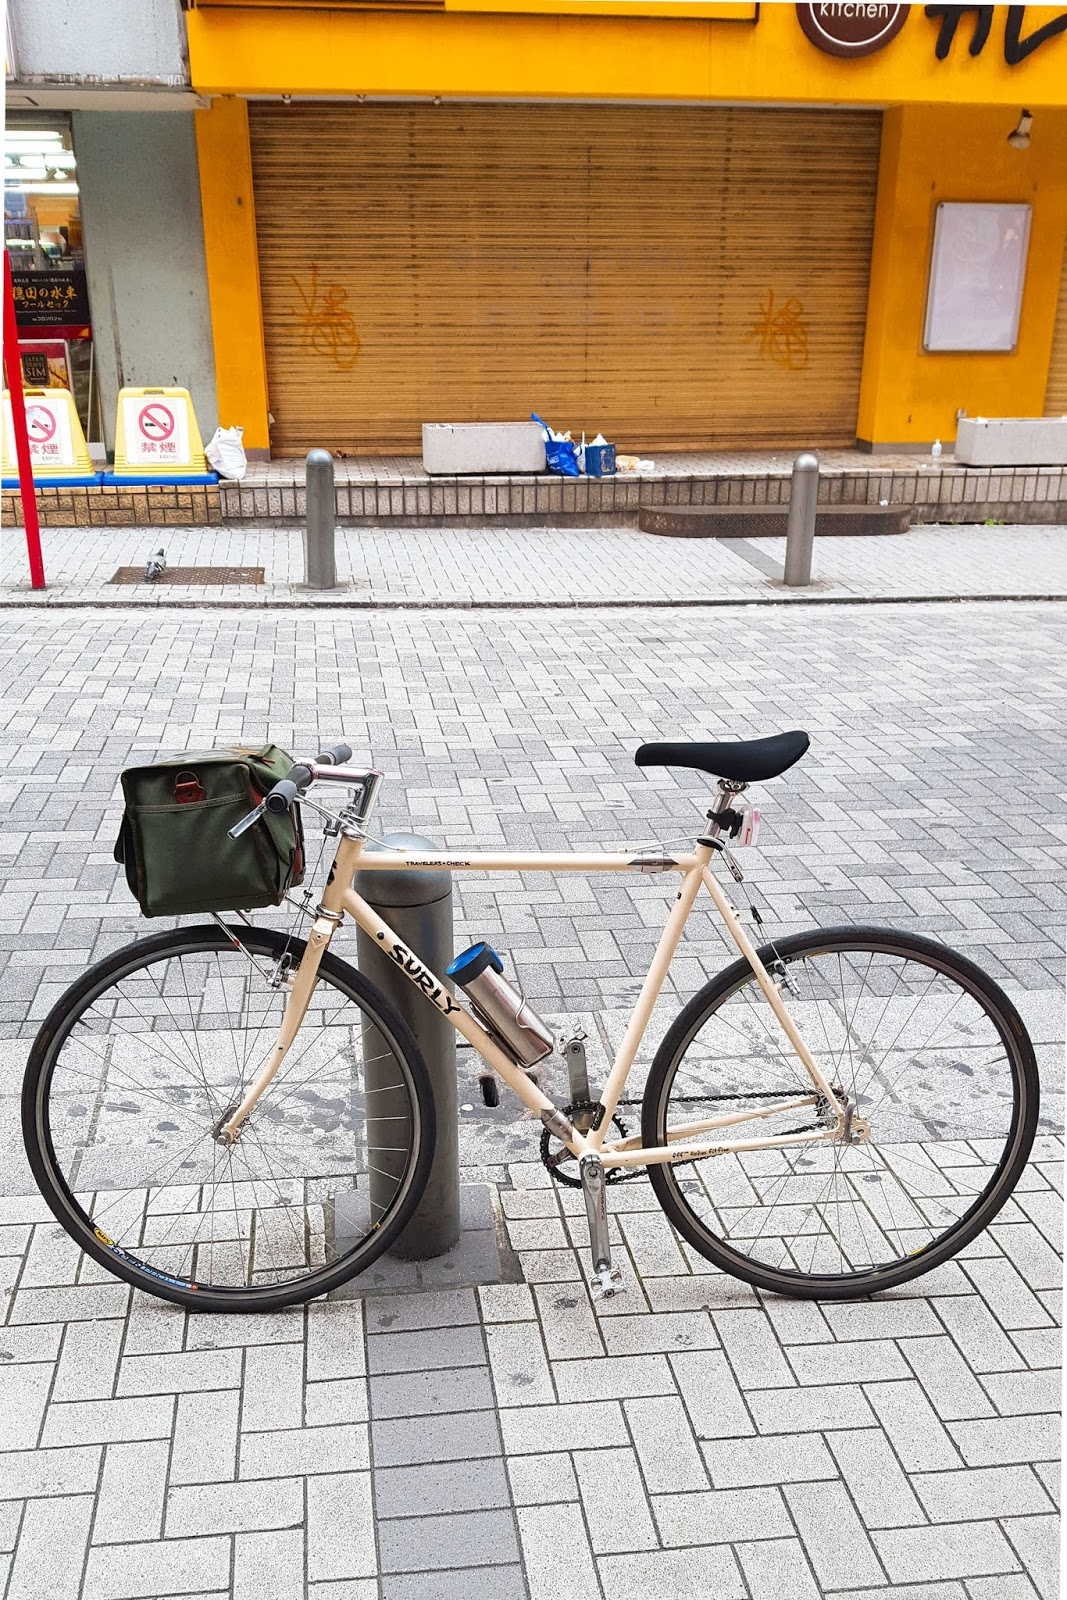 The Velo ORANGE Blog: 3/1/16